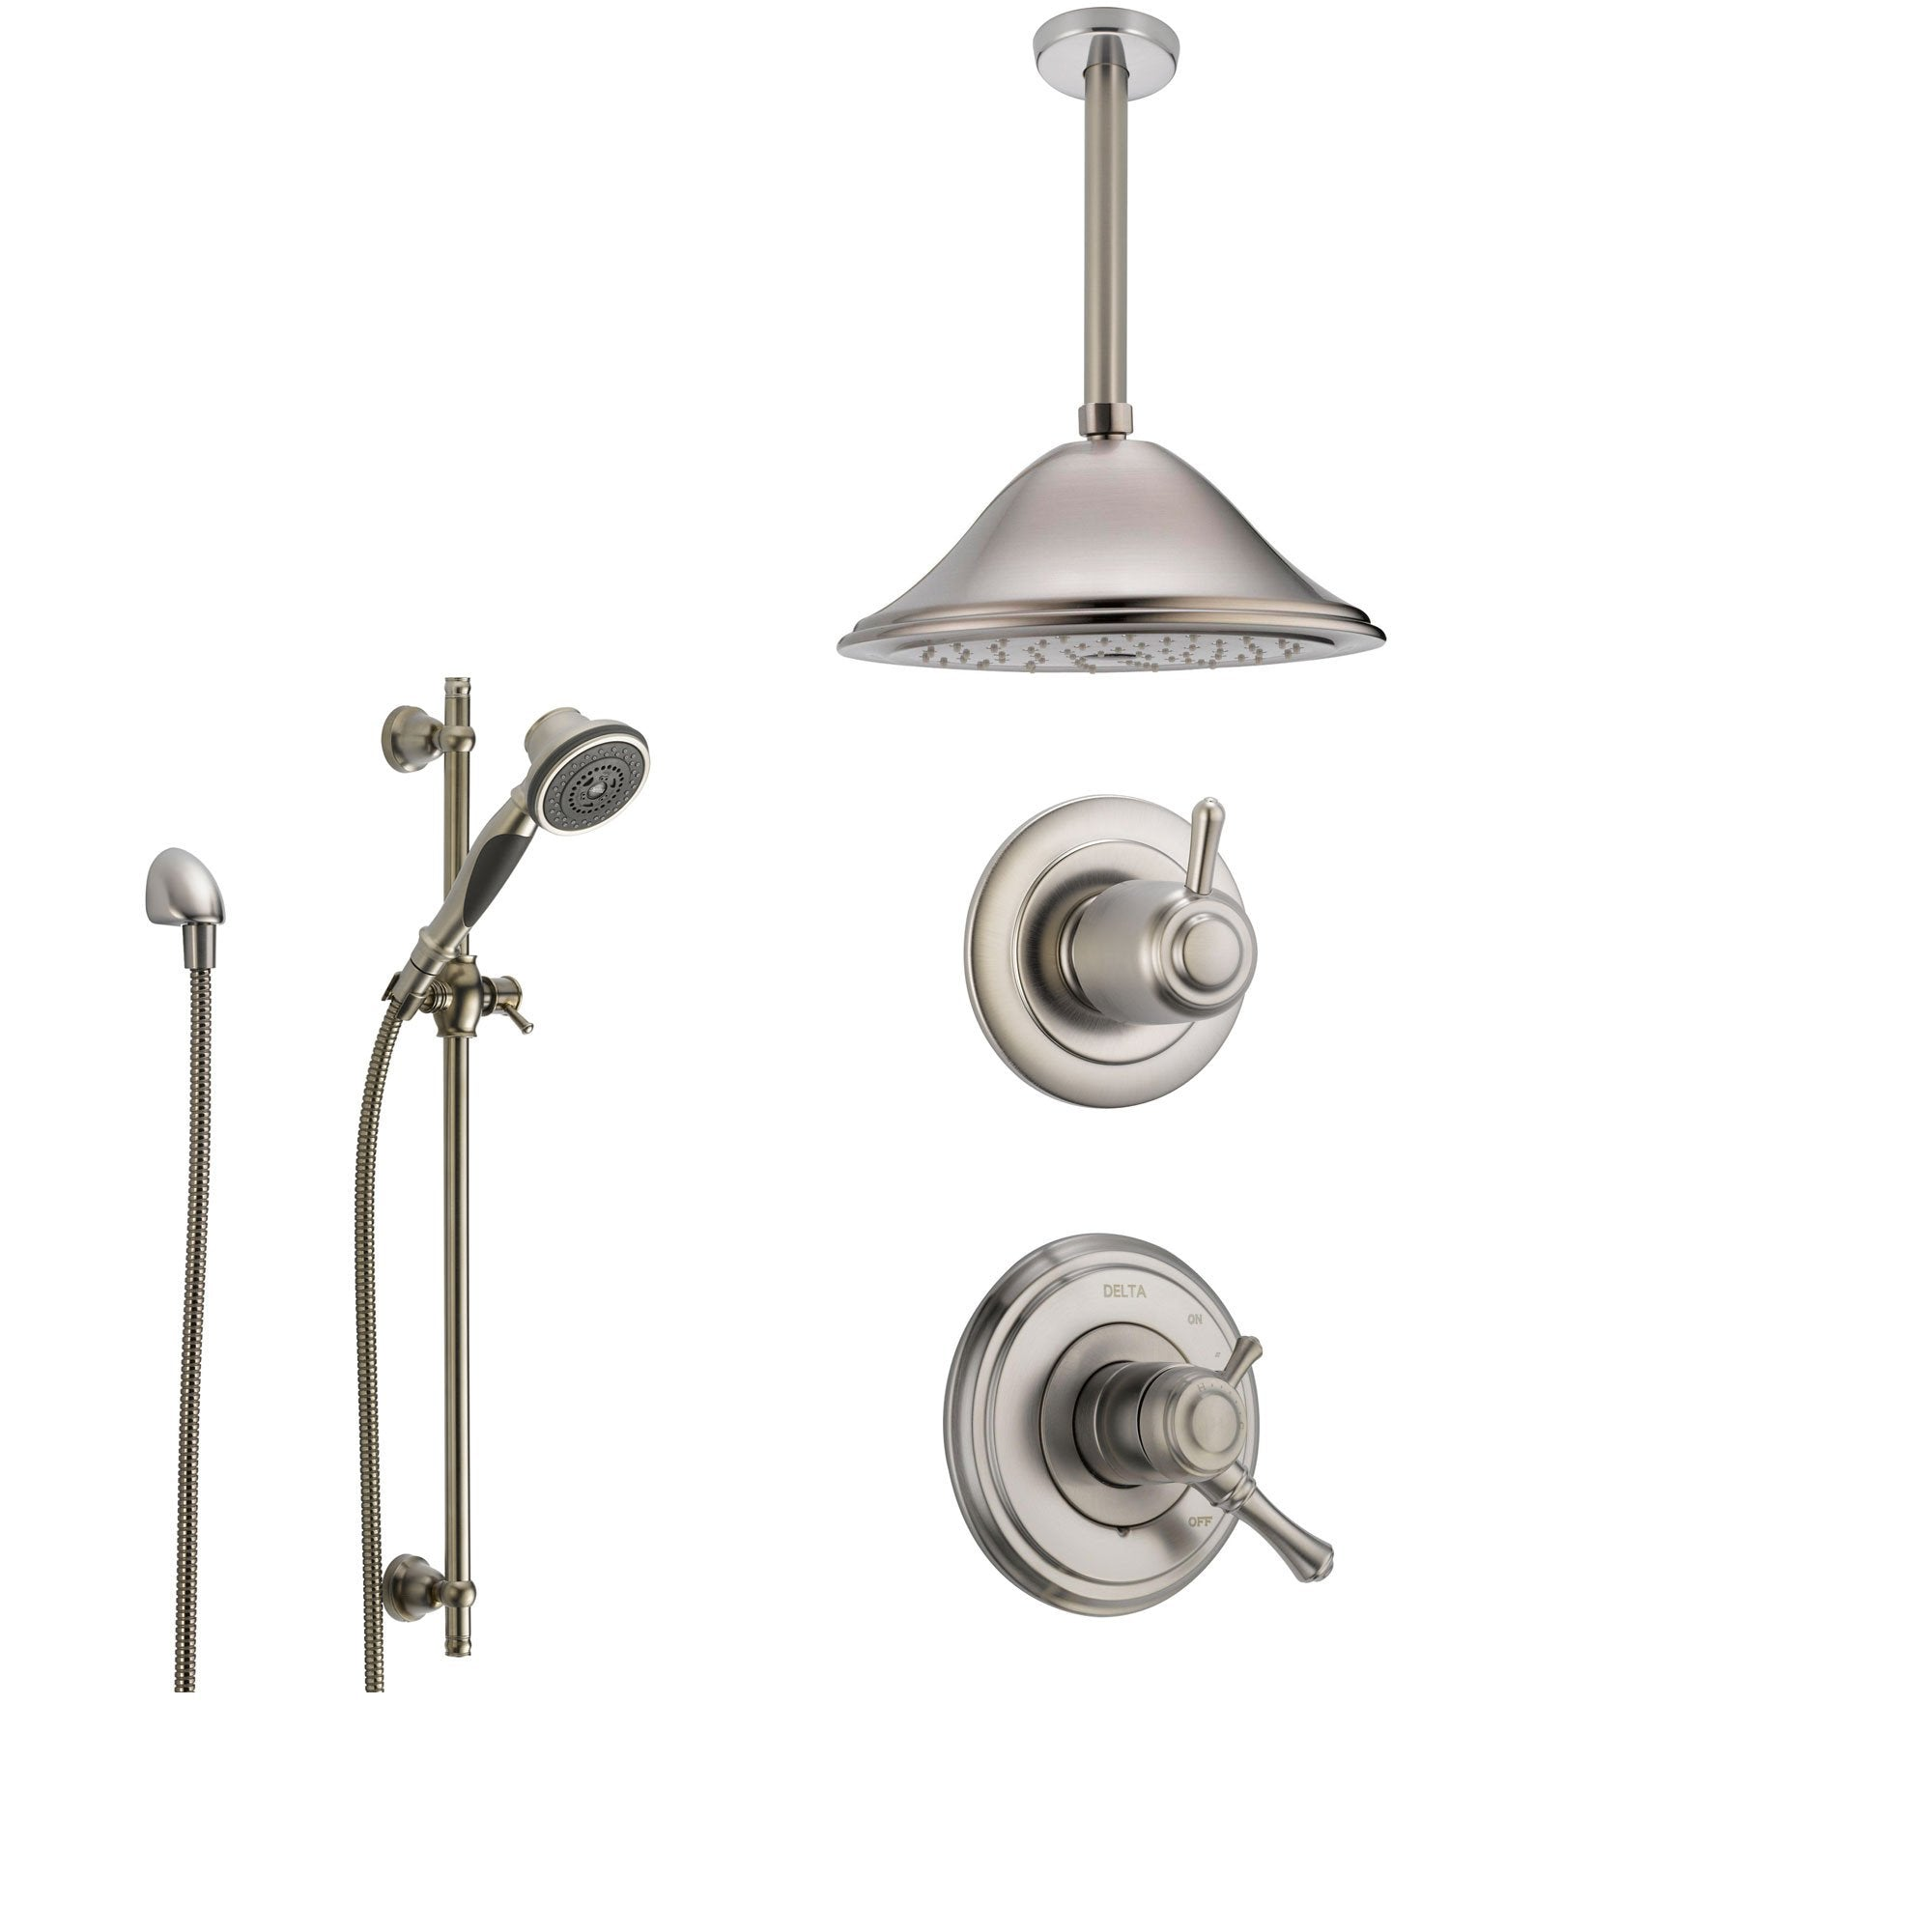 Delta Cassidy Stainless Steel Shower System with Dual Control Shower Handle, 3-setting Diverter, Large Rain Showerhead, and Handheld Shower SS179784SS